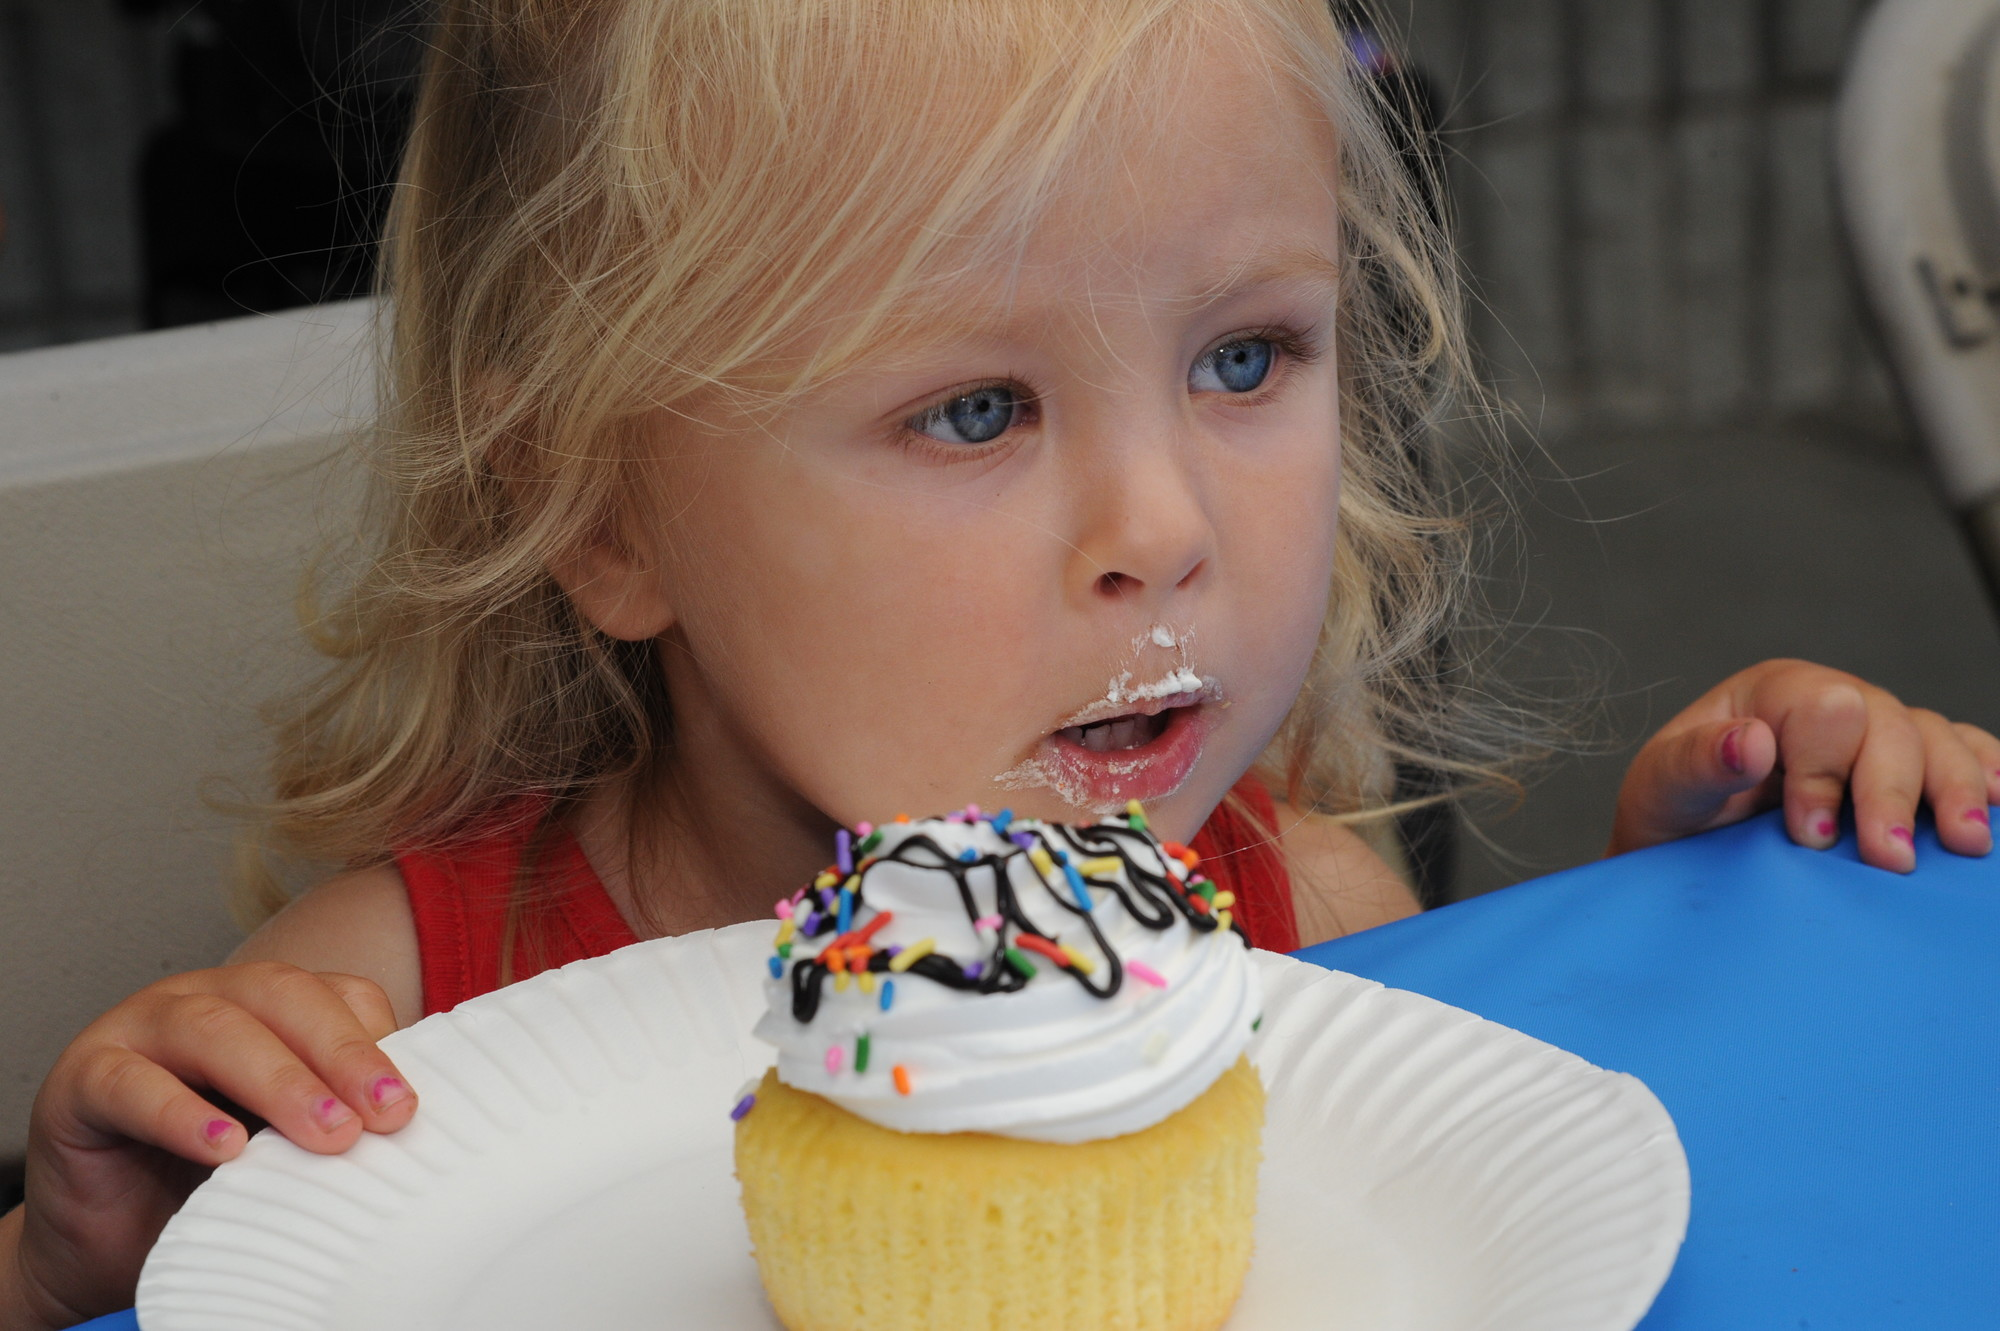 Molly Stevens, 2, wasn't ready to finish her cupcake, even though the contest was over.